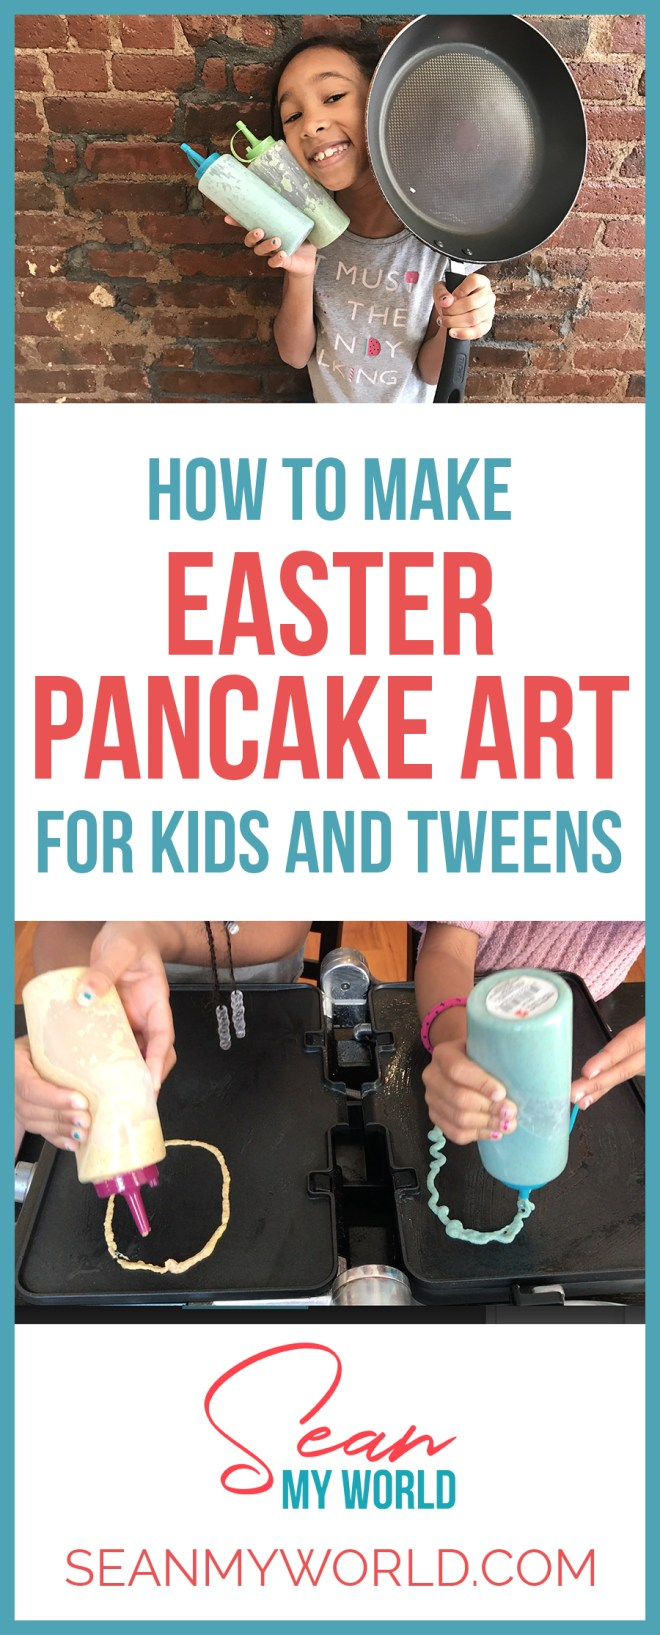 We're doing the pancake drawing challenge - Easter edition! Want to learn how to make amazing pancake art? Then watch this video.